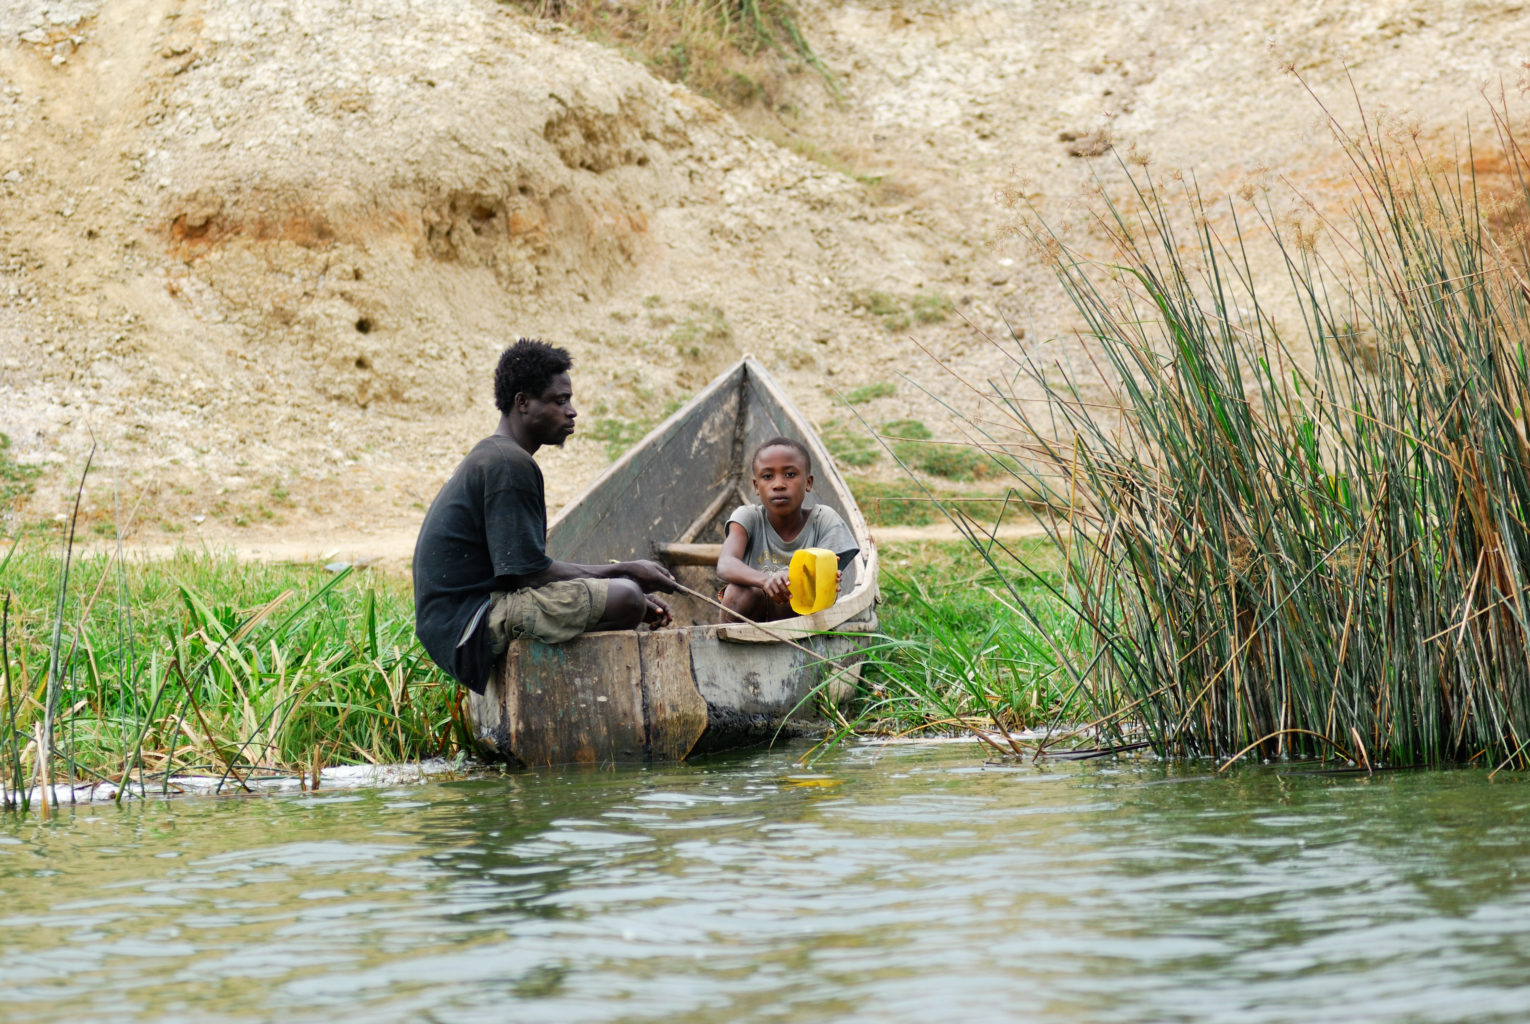 QUEEN ELISABETH NATIONAL PARK UGANDA - AUG 29 2010: Local fisherman and his son shown on the Kazinga channel shore. The Kazinga channel is the only source of transportation in this region of central Africa